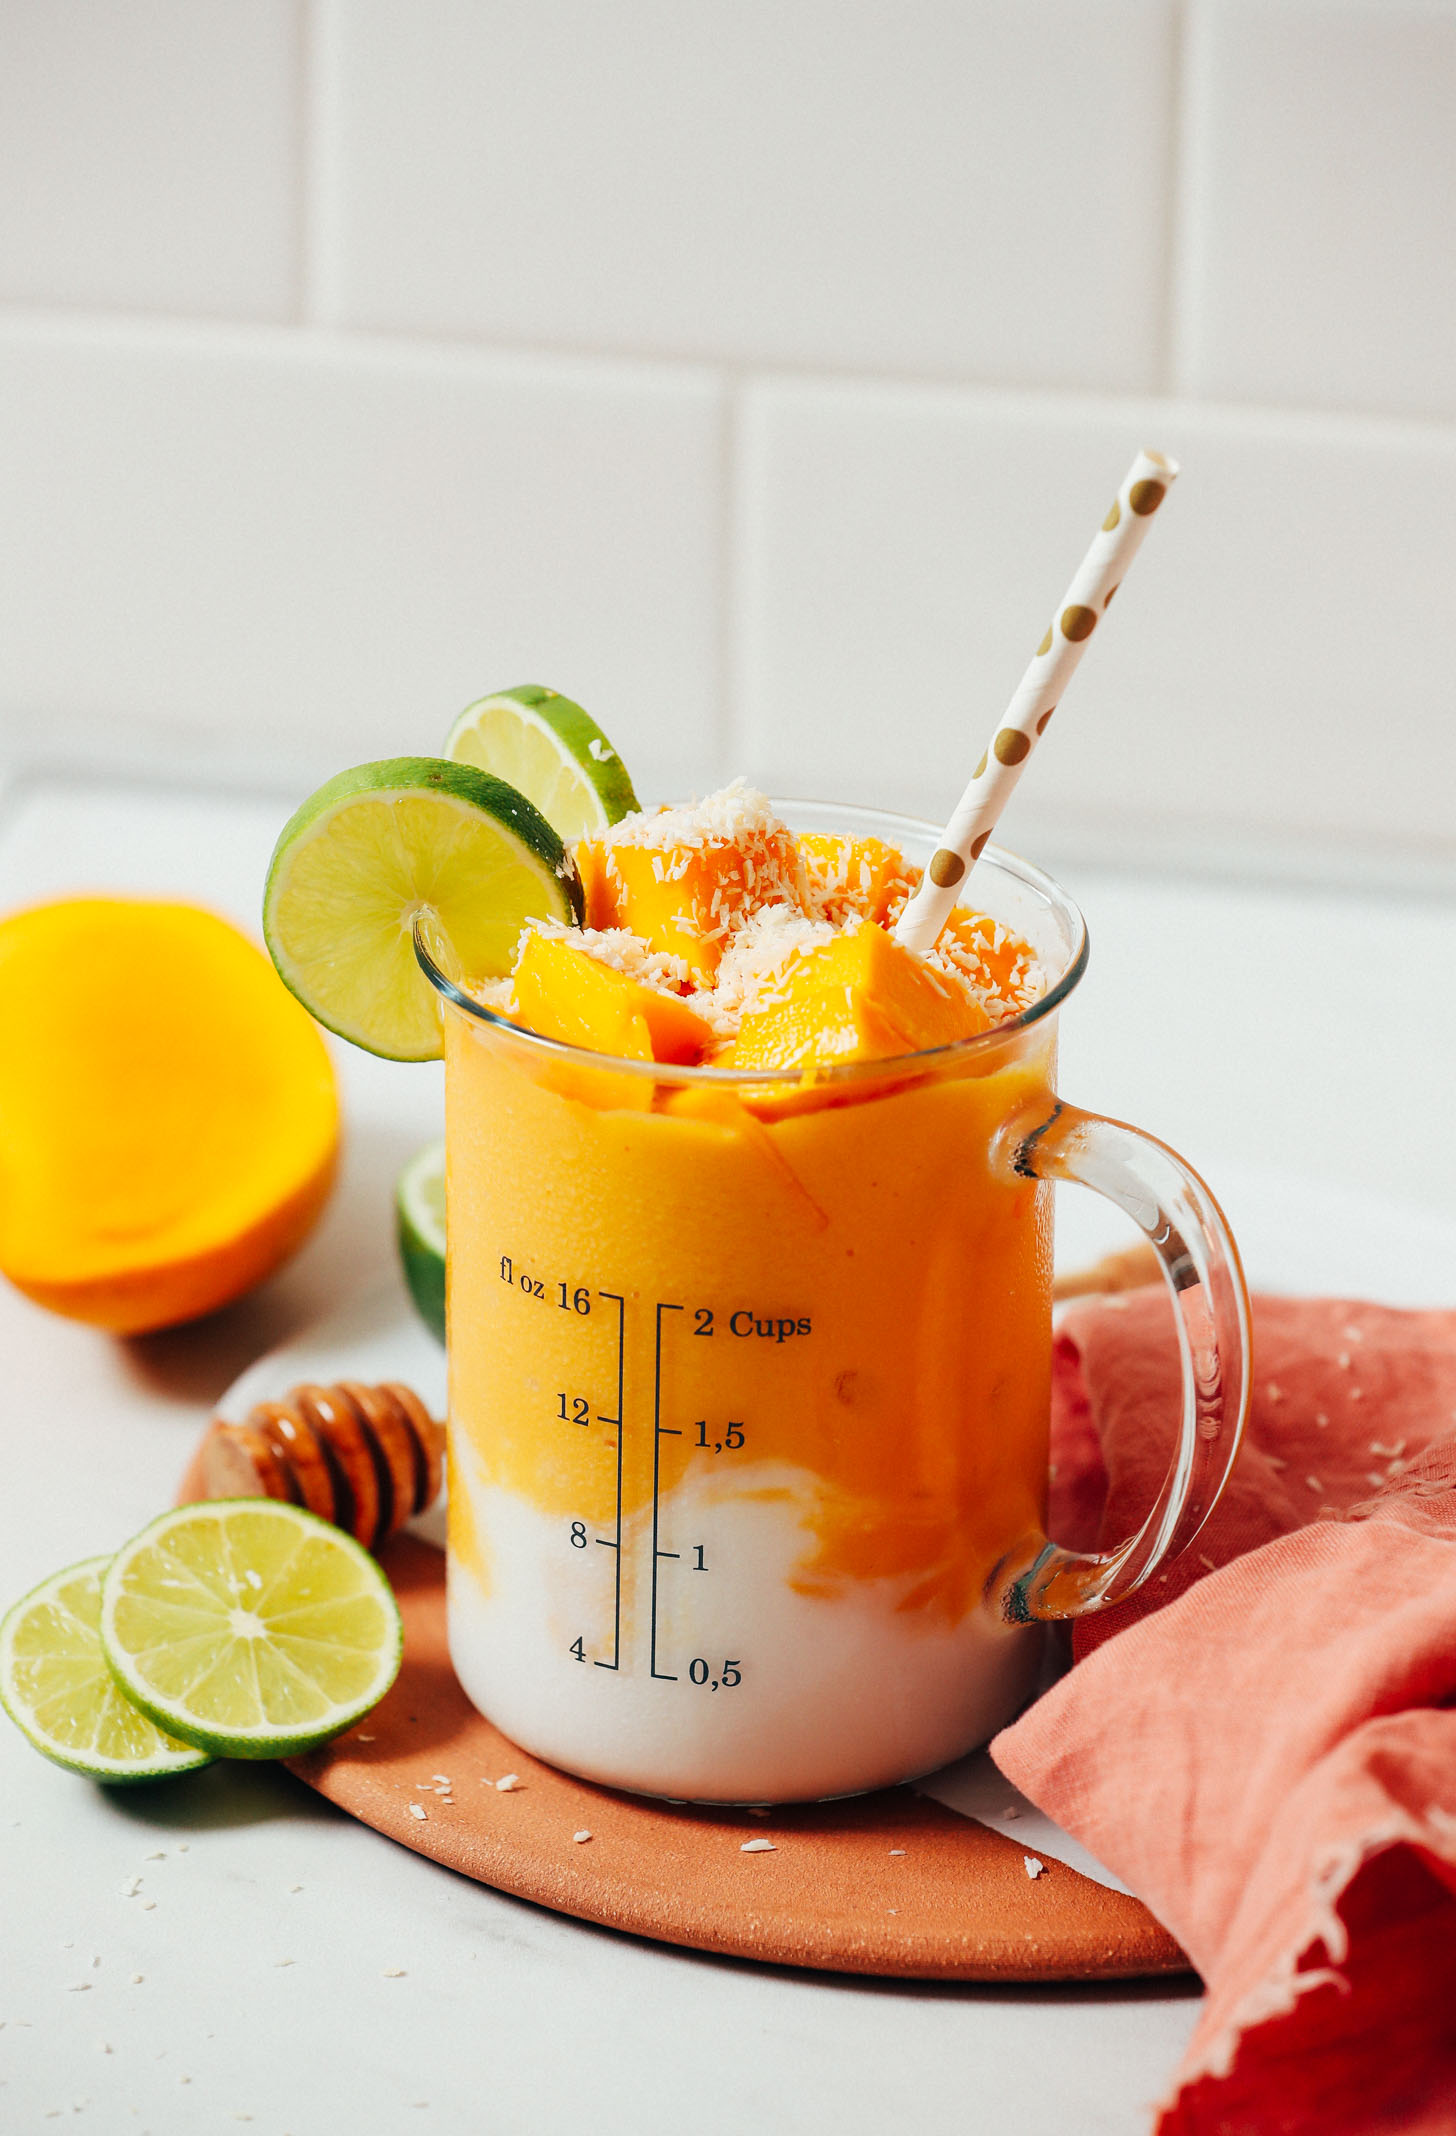 Coconut milk swirled at the bottom of a glass filled with our dairy-free Mango Lassi recipe